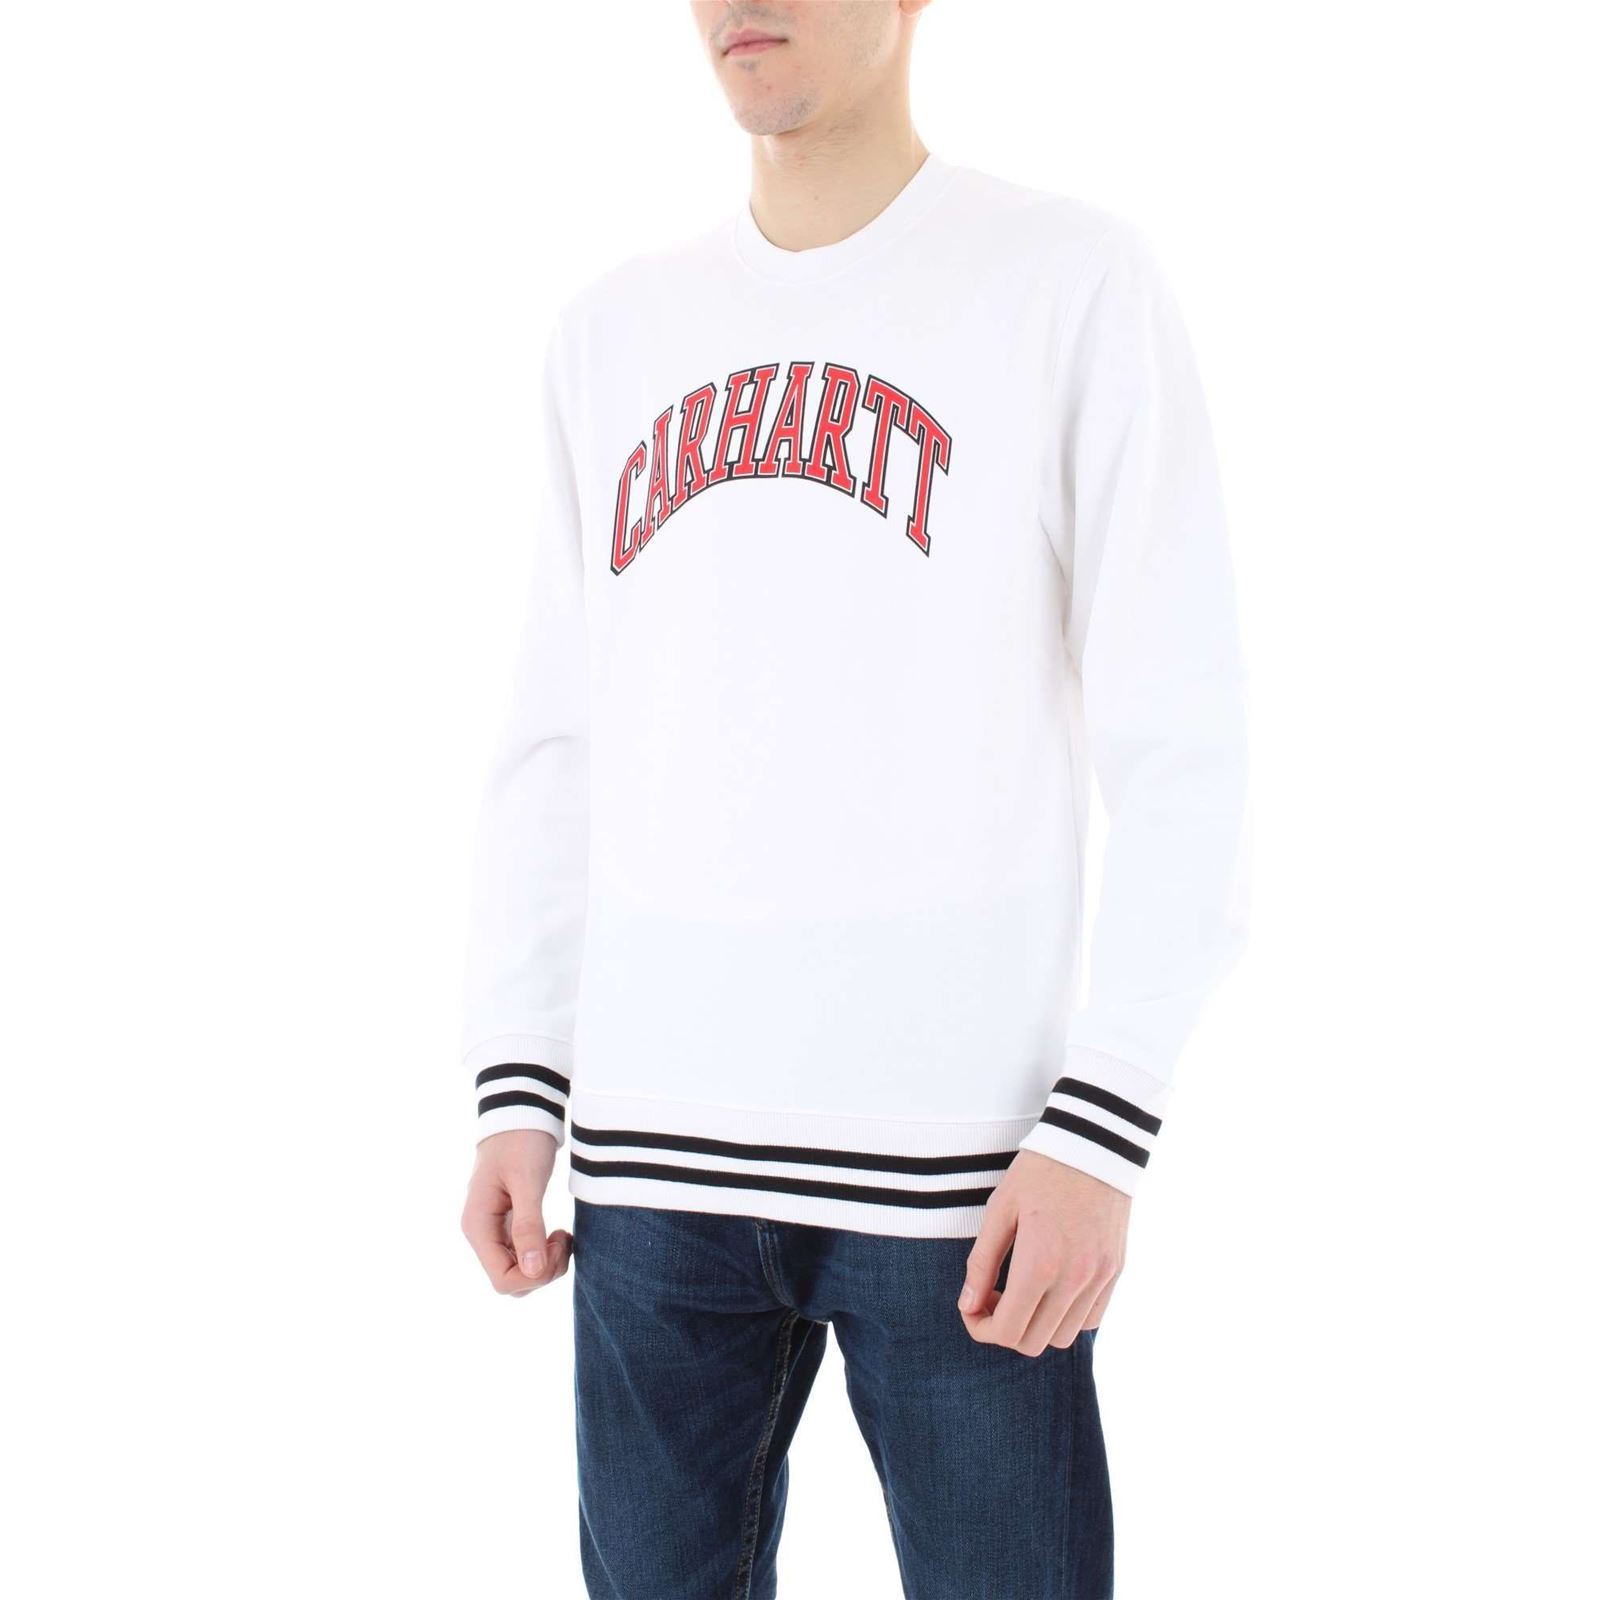 Carhartt Sweat shirtBlanc Sweat V V shirtBlanc Carhartt Sweat shirtBlanc Homme Homme Carhartt nP8wO0k